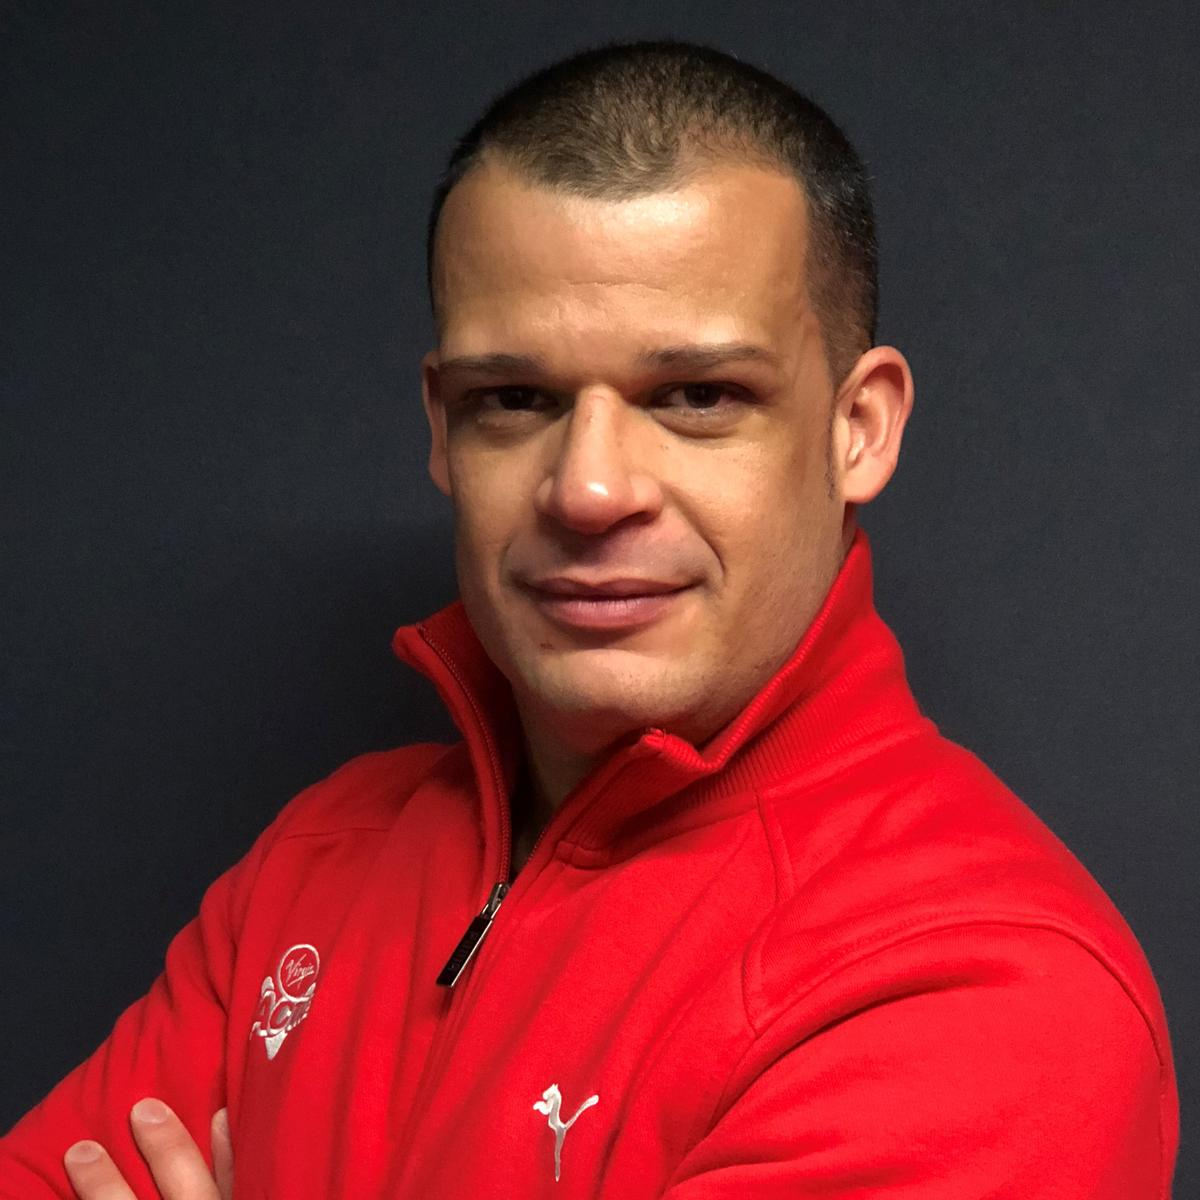 Rivera joins from Town Sports International in New York, US, where he was interim senior director of group exercise / Virgin Active